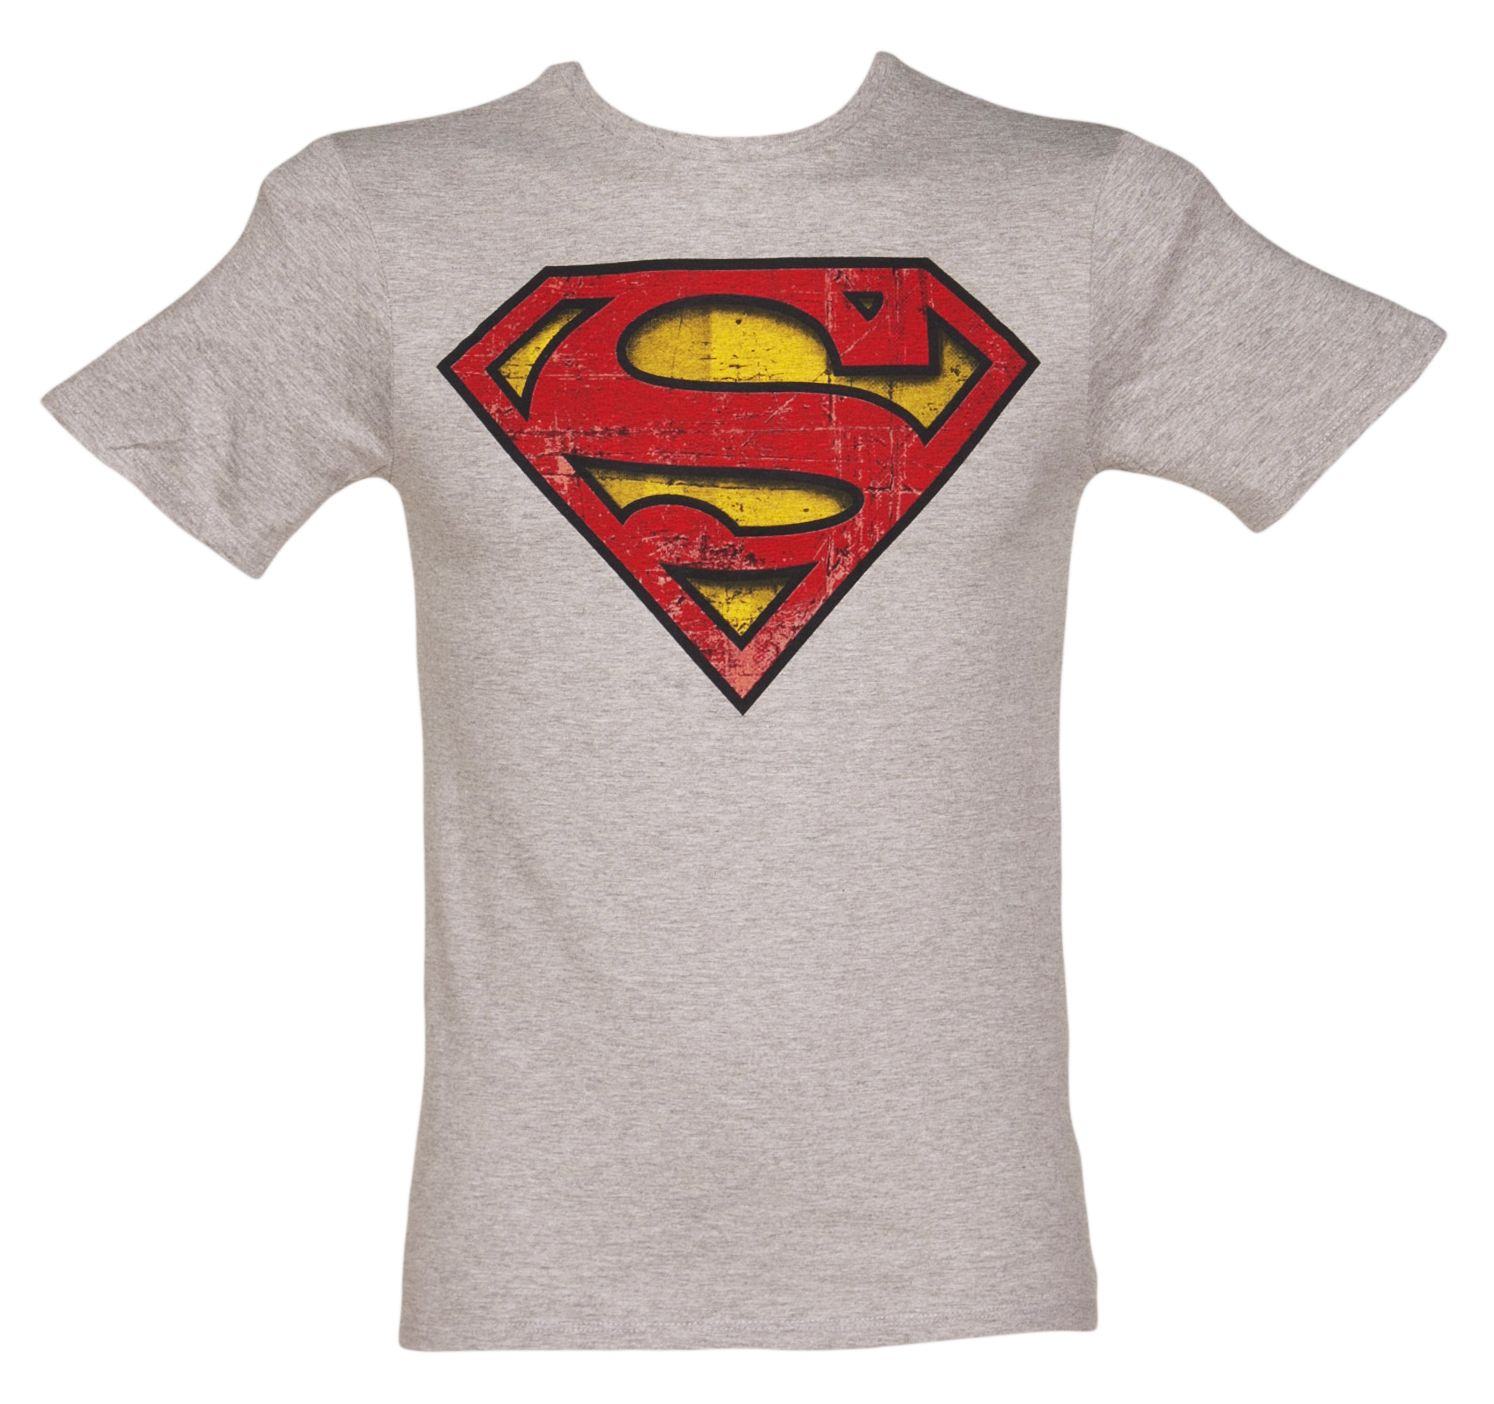 Mens Grey Marl Distressed Superman Logo T Shirt Xoxo T Shirts